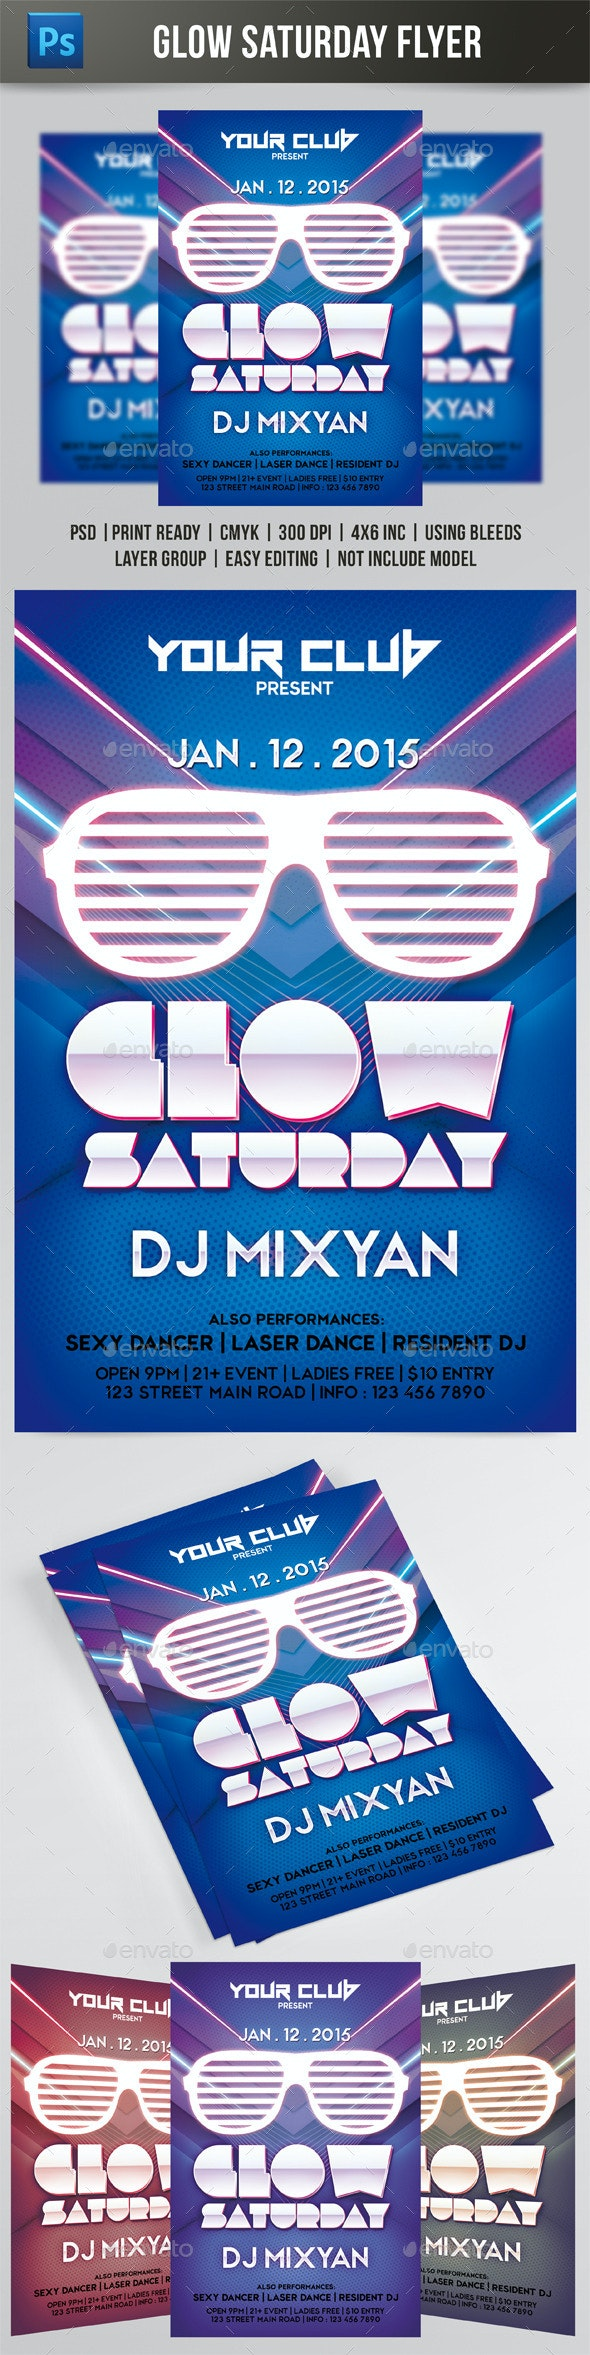 Glow Saturday Flyer  - Events Flyers